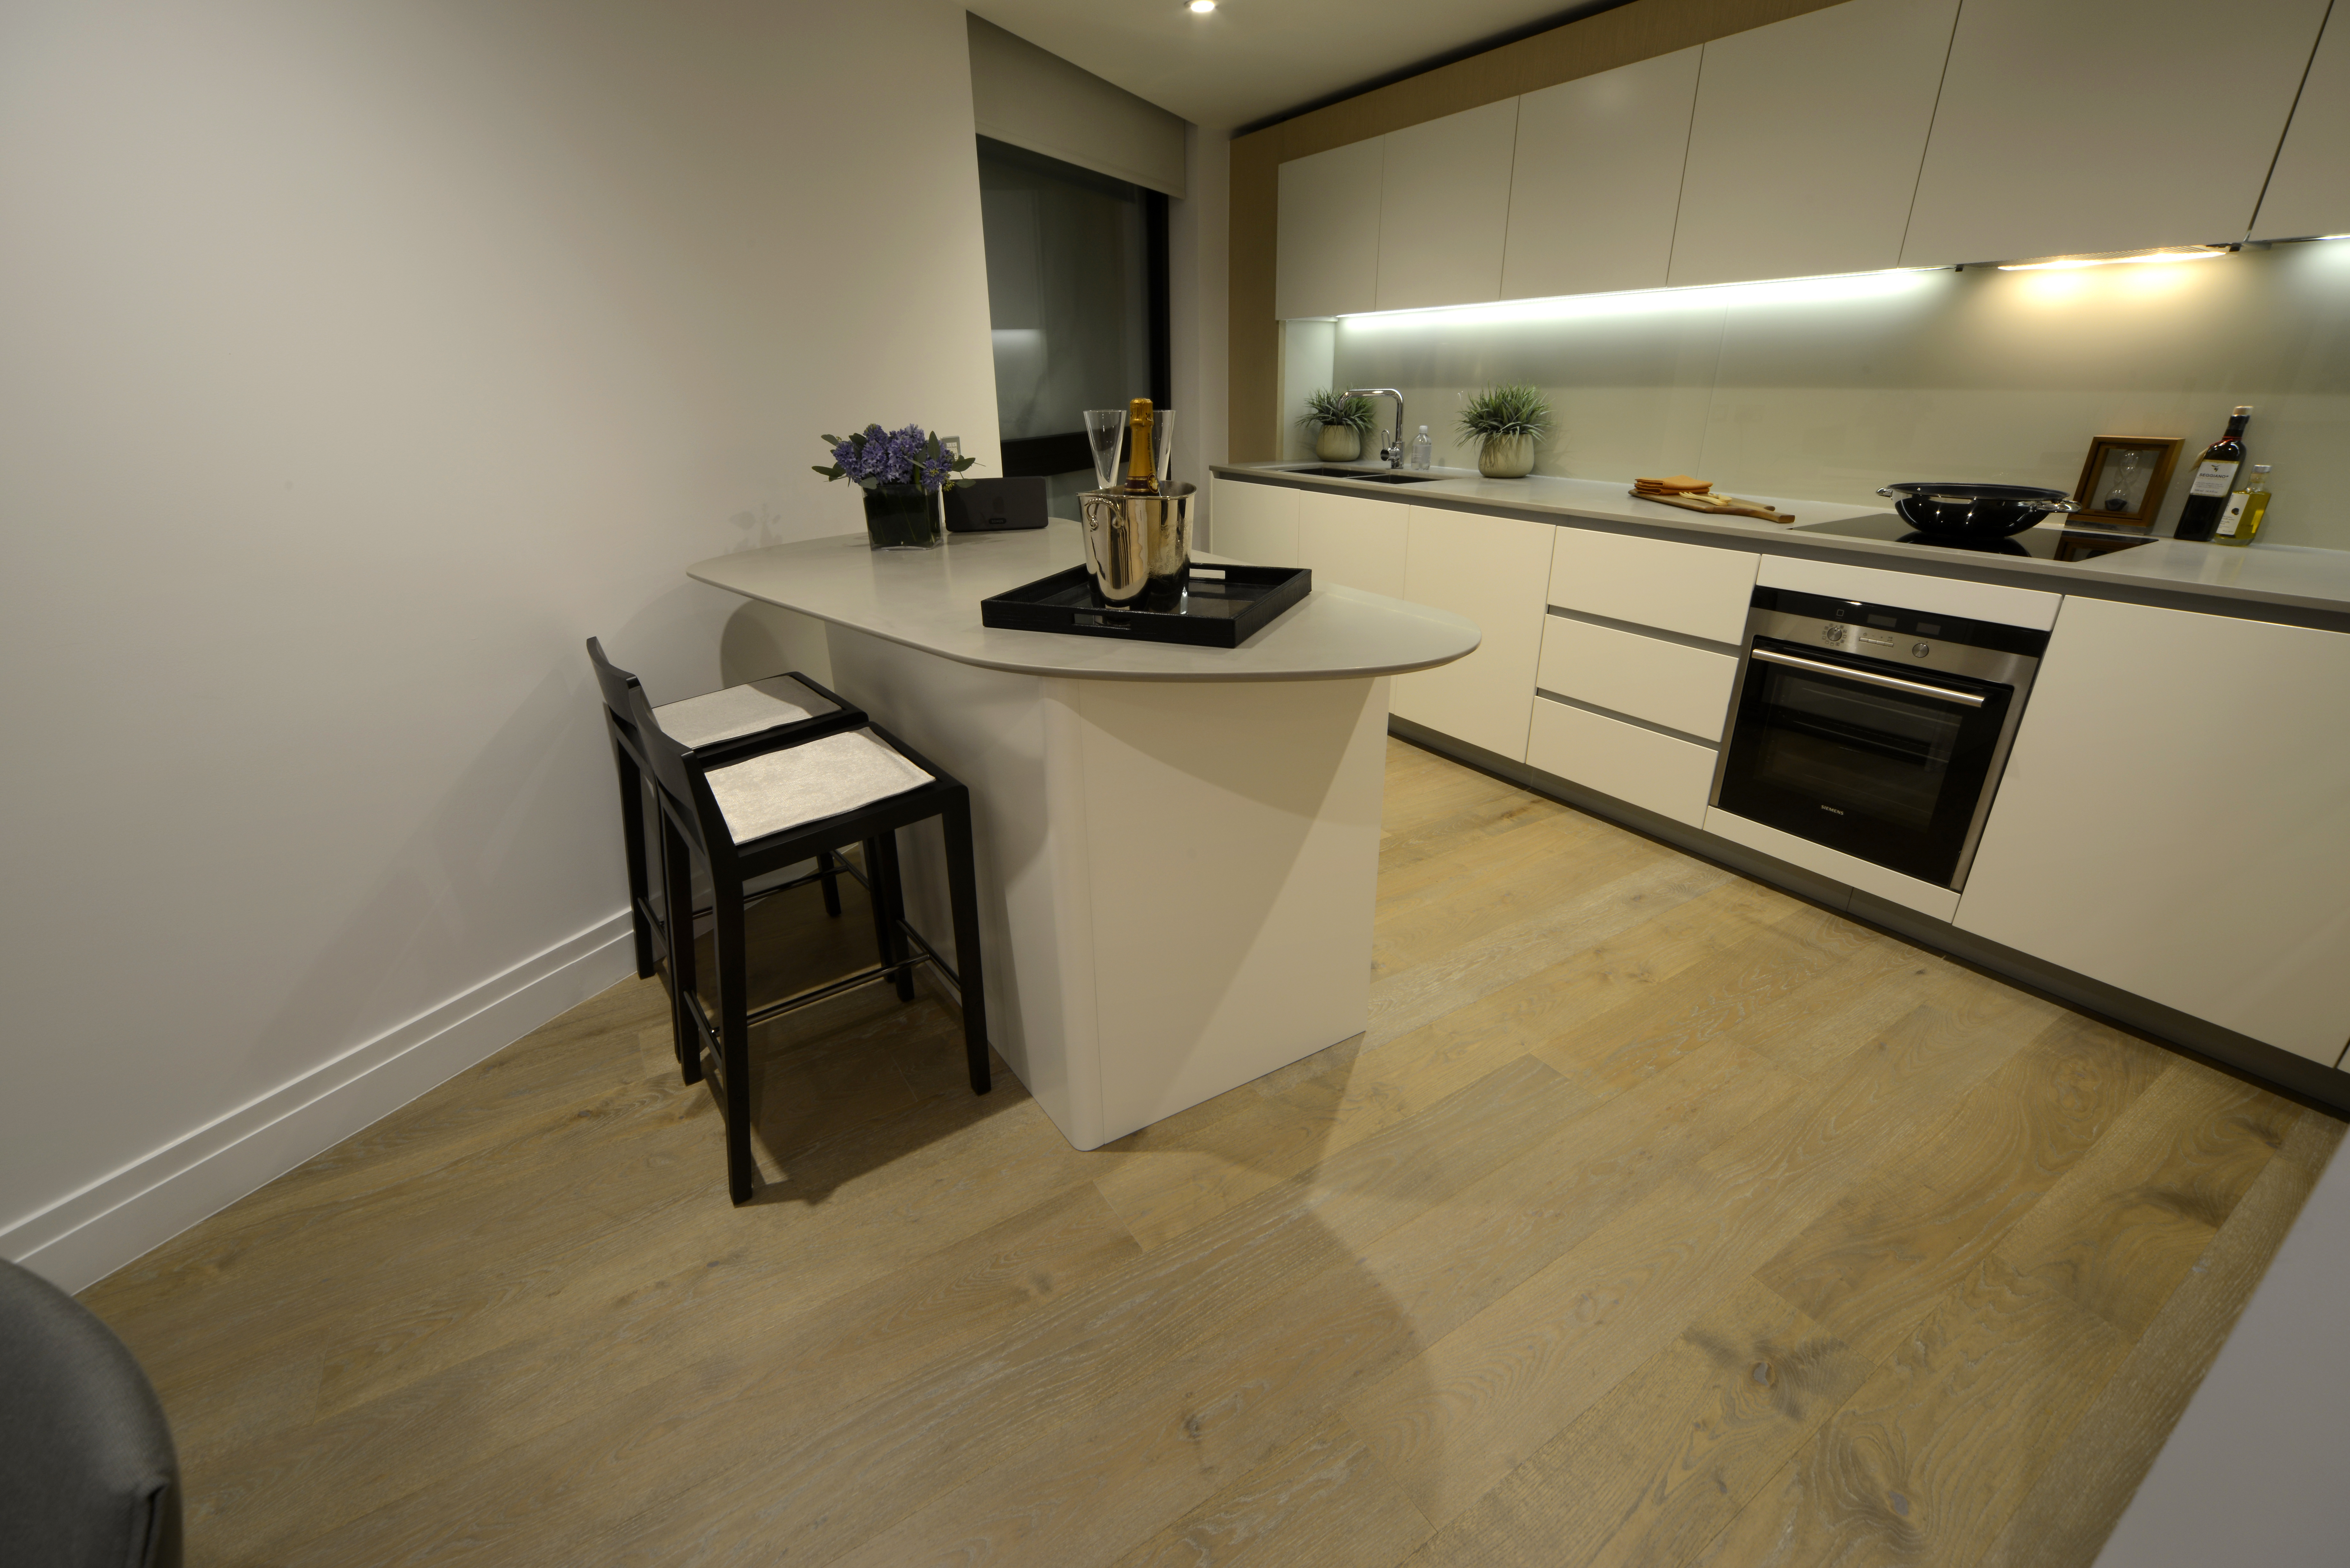 Fumed and Limed Lacquered Oak Floor fitted in kitchens throughout high rise development in London